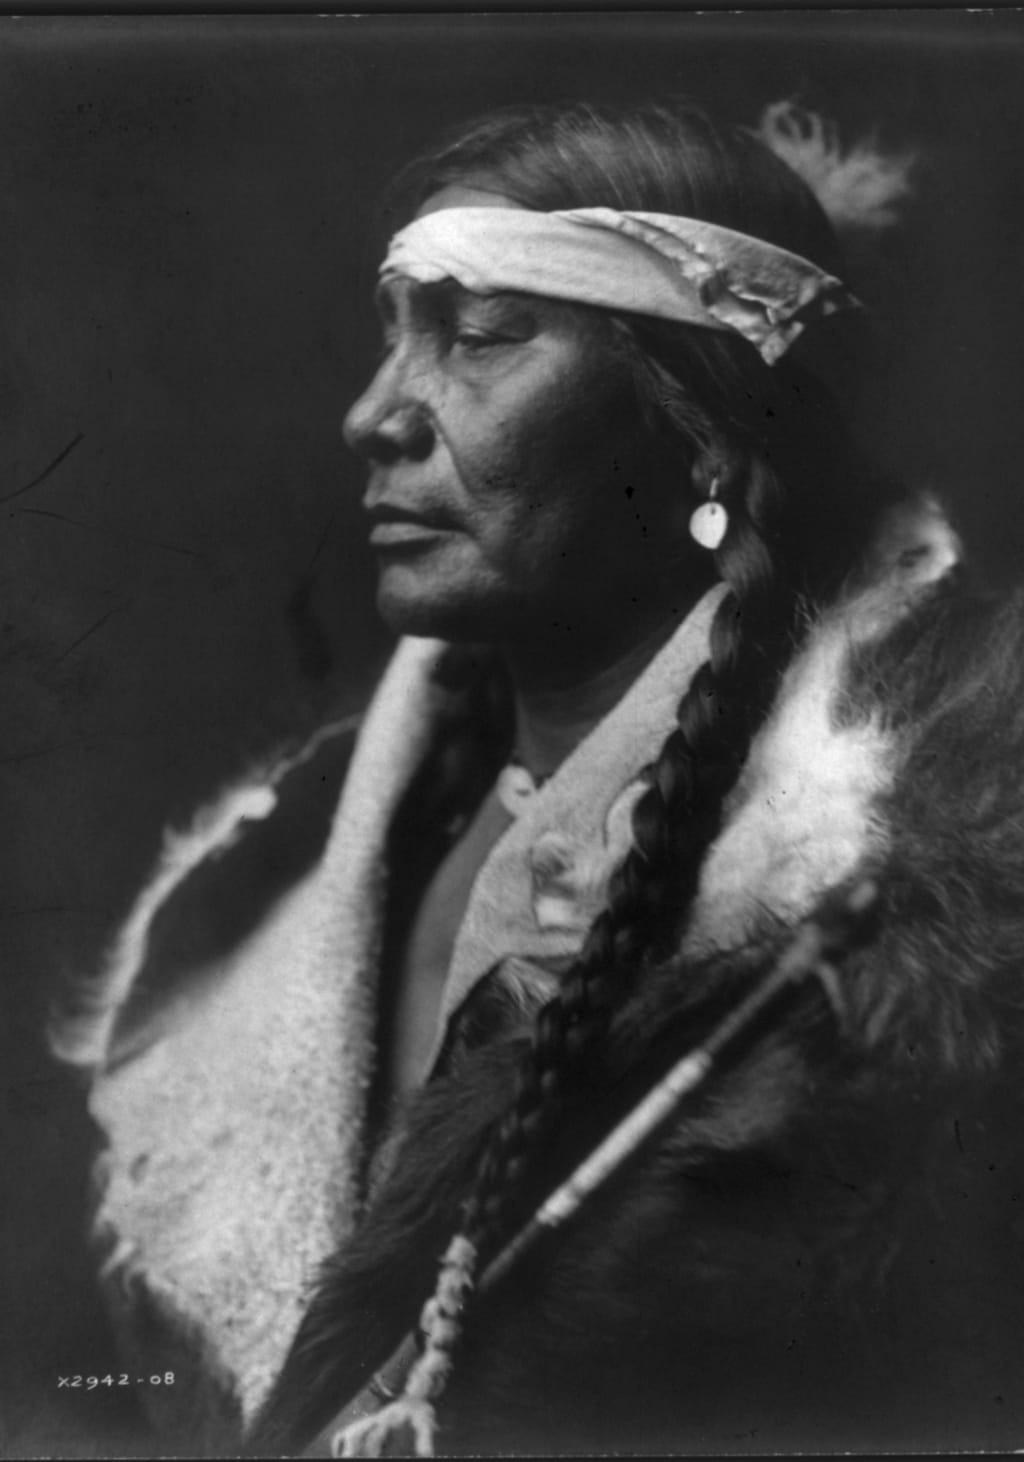 Atsina Man by Edward S. Curtis, published in The North American Indian, 1908. (Library of Congress)